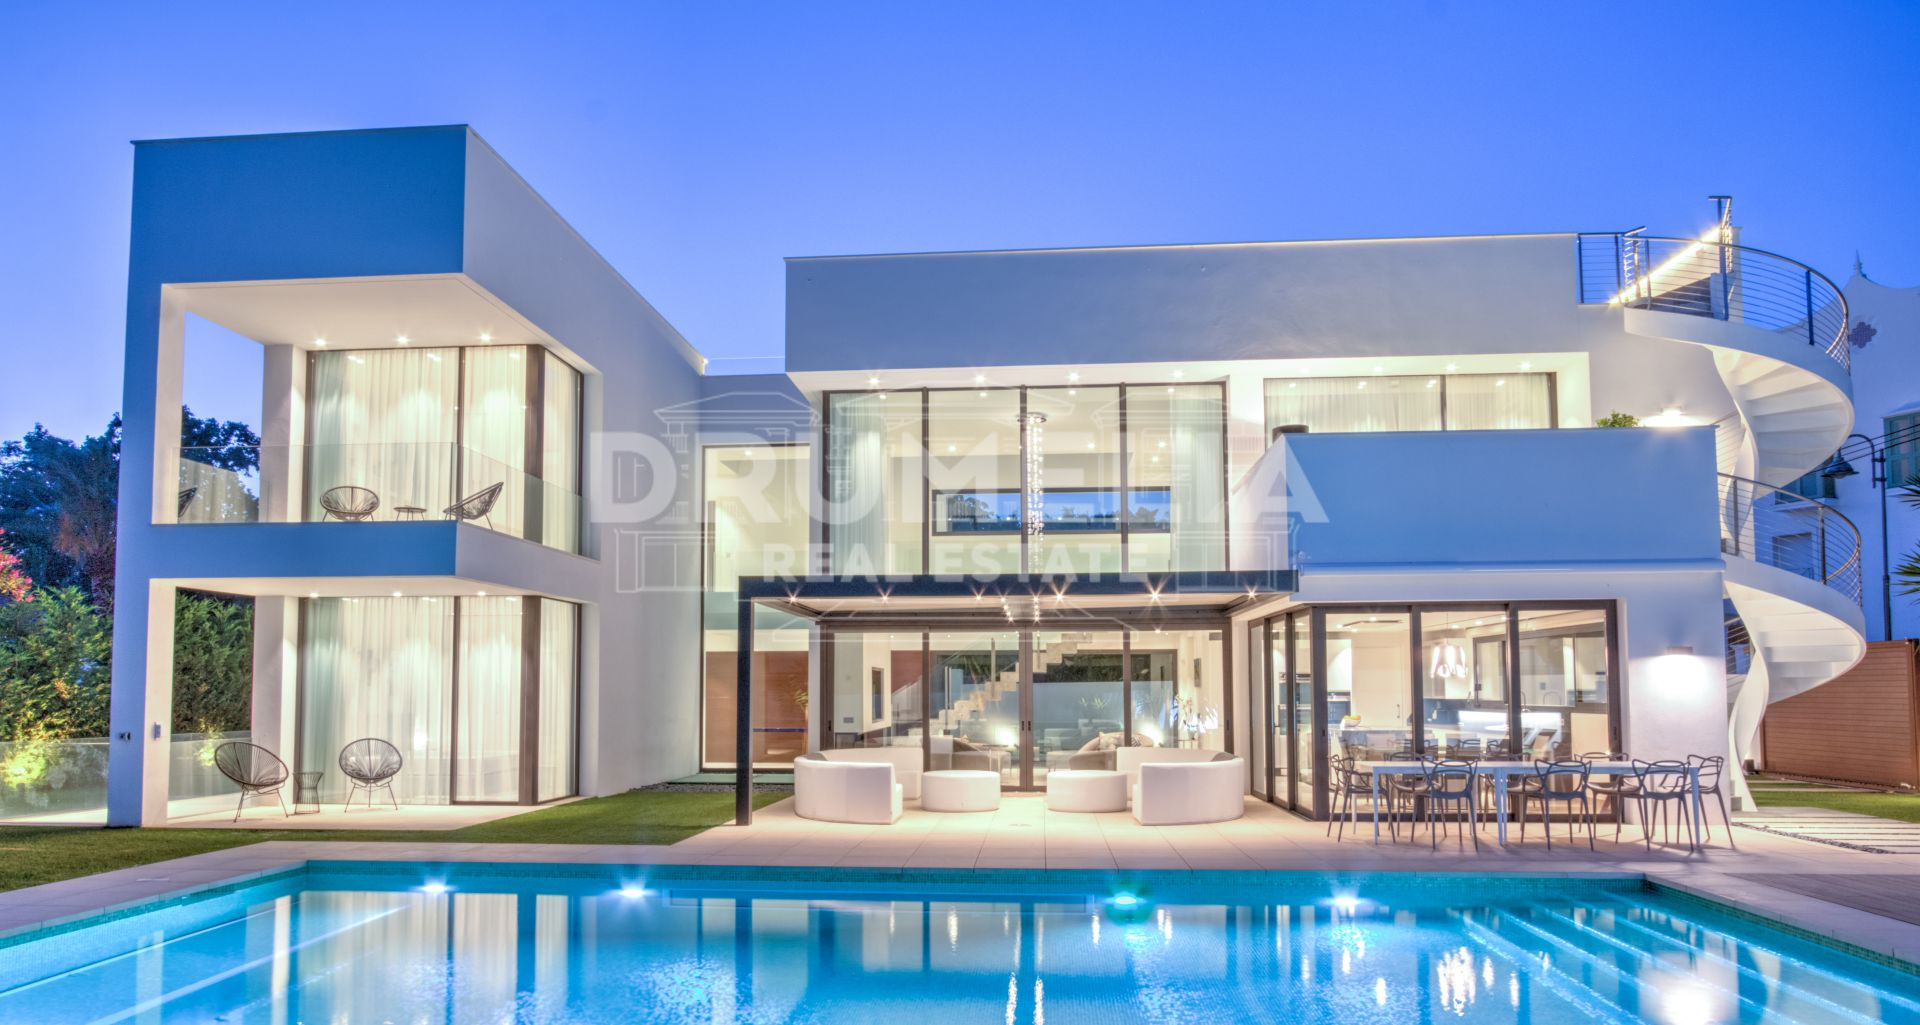 Marbella - Puerto Banus, Exceptional New Modern Luxury Villa in Puerto Banus, Marbella.